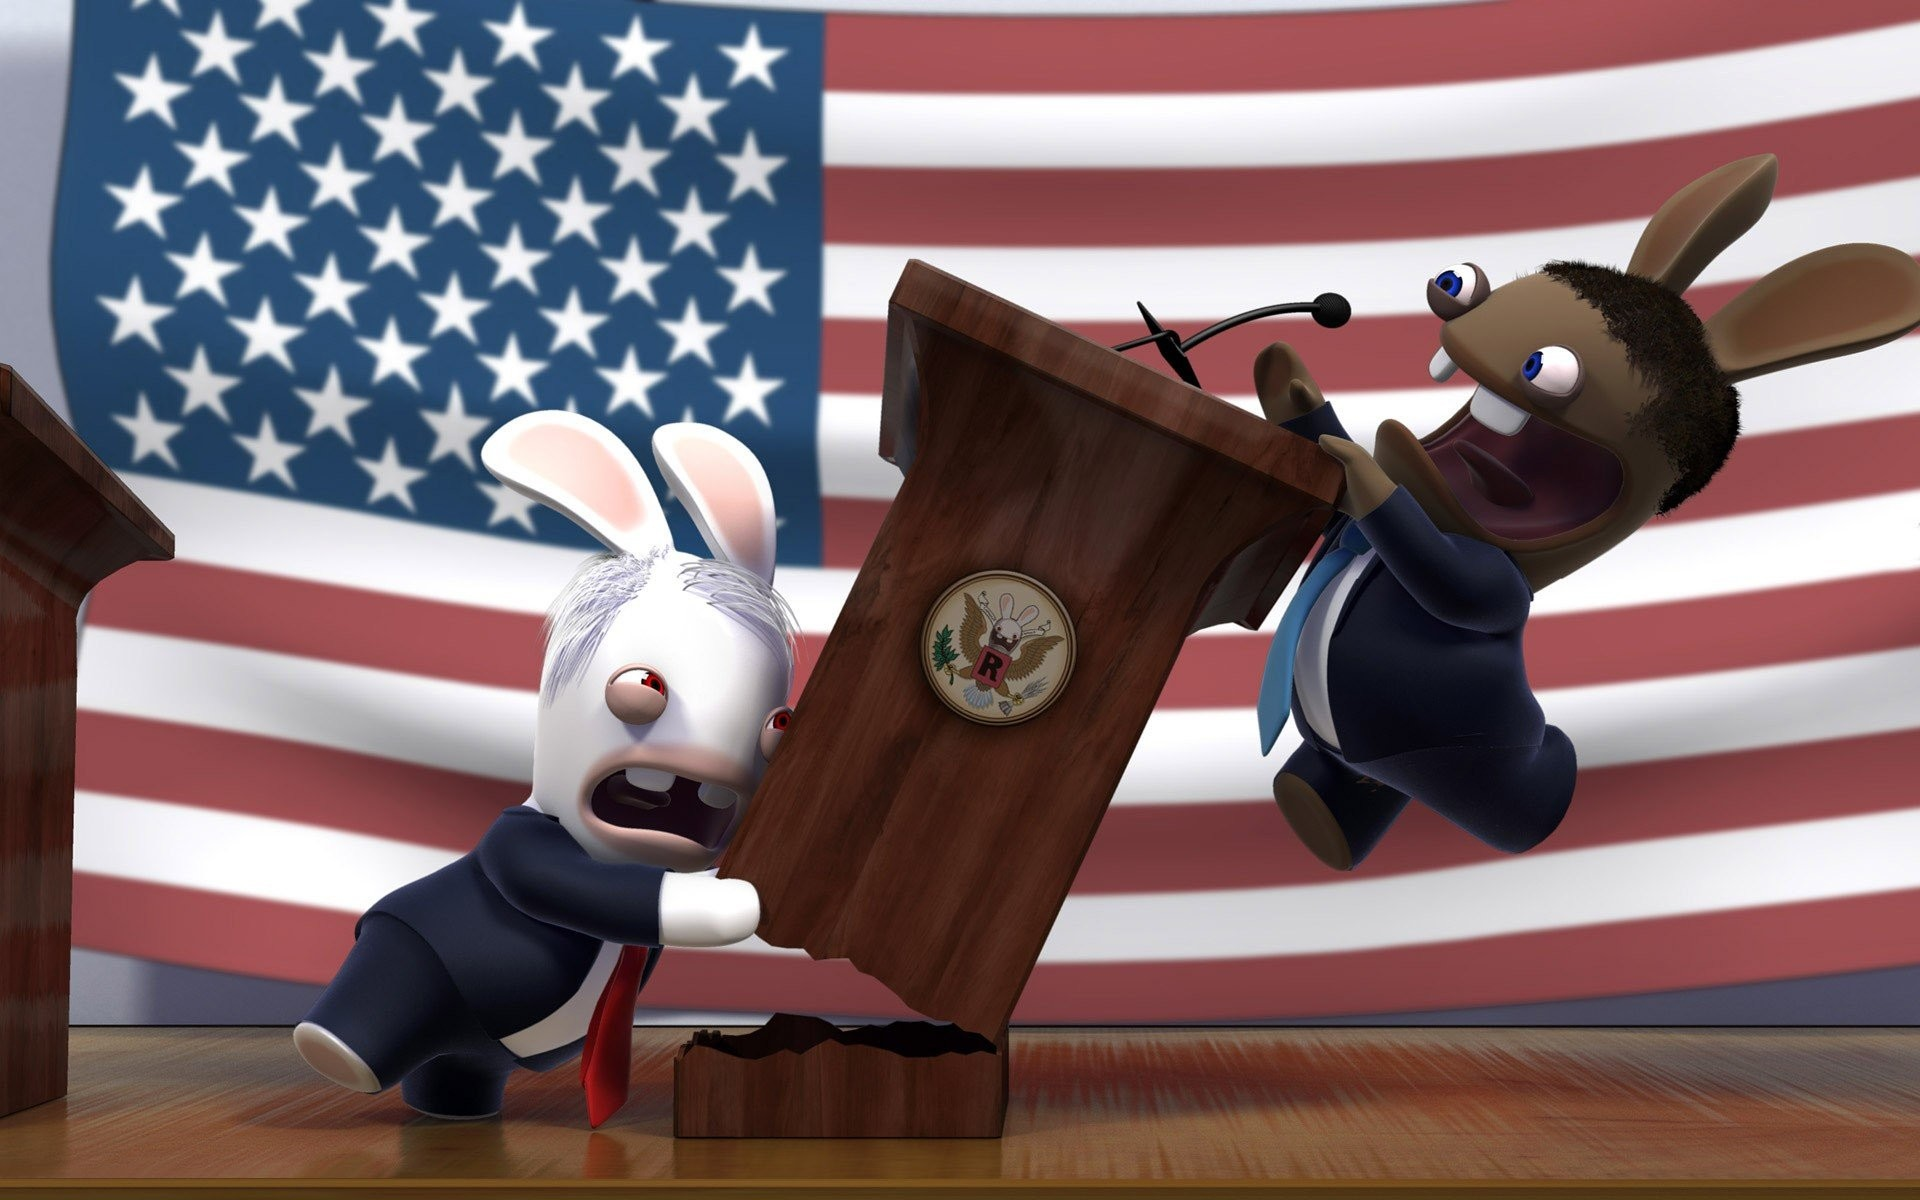 1920x1200 rabbit mccain obama president fight funny